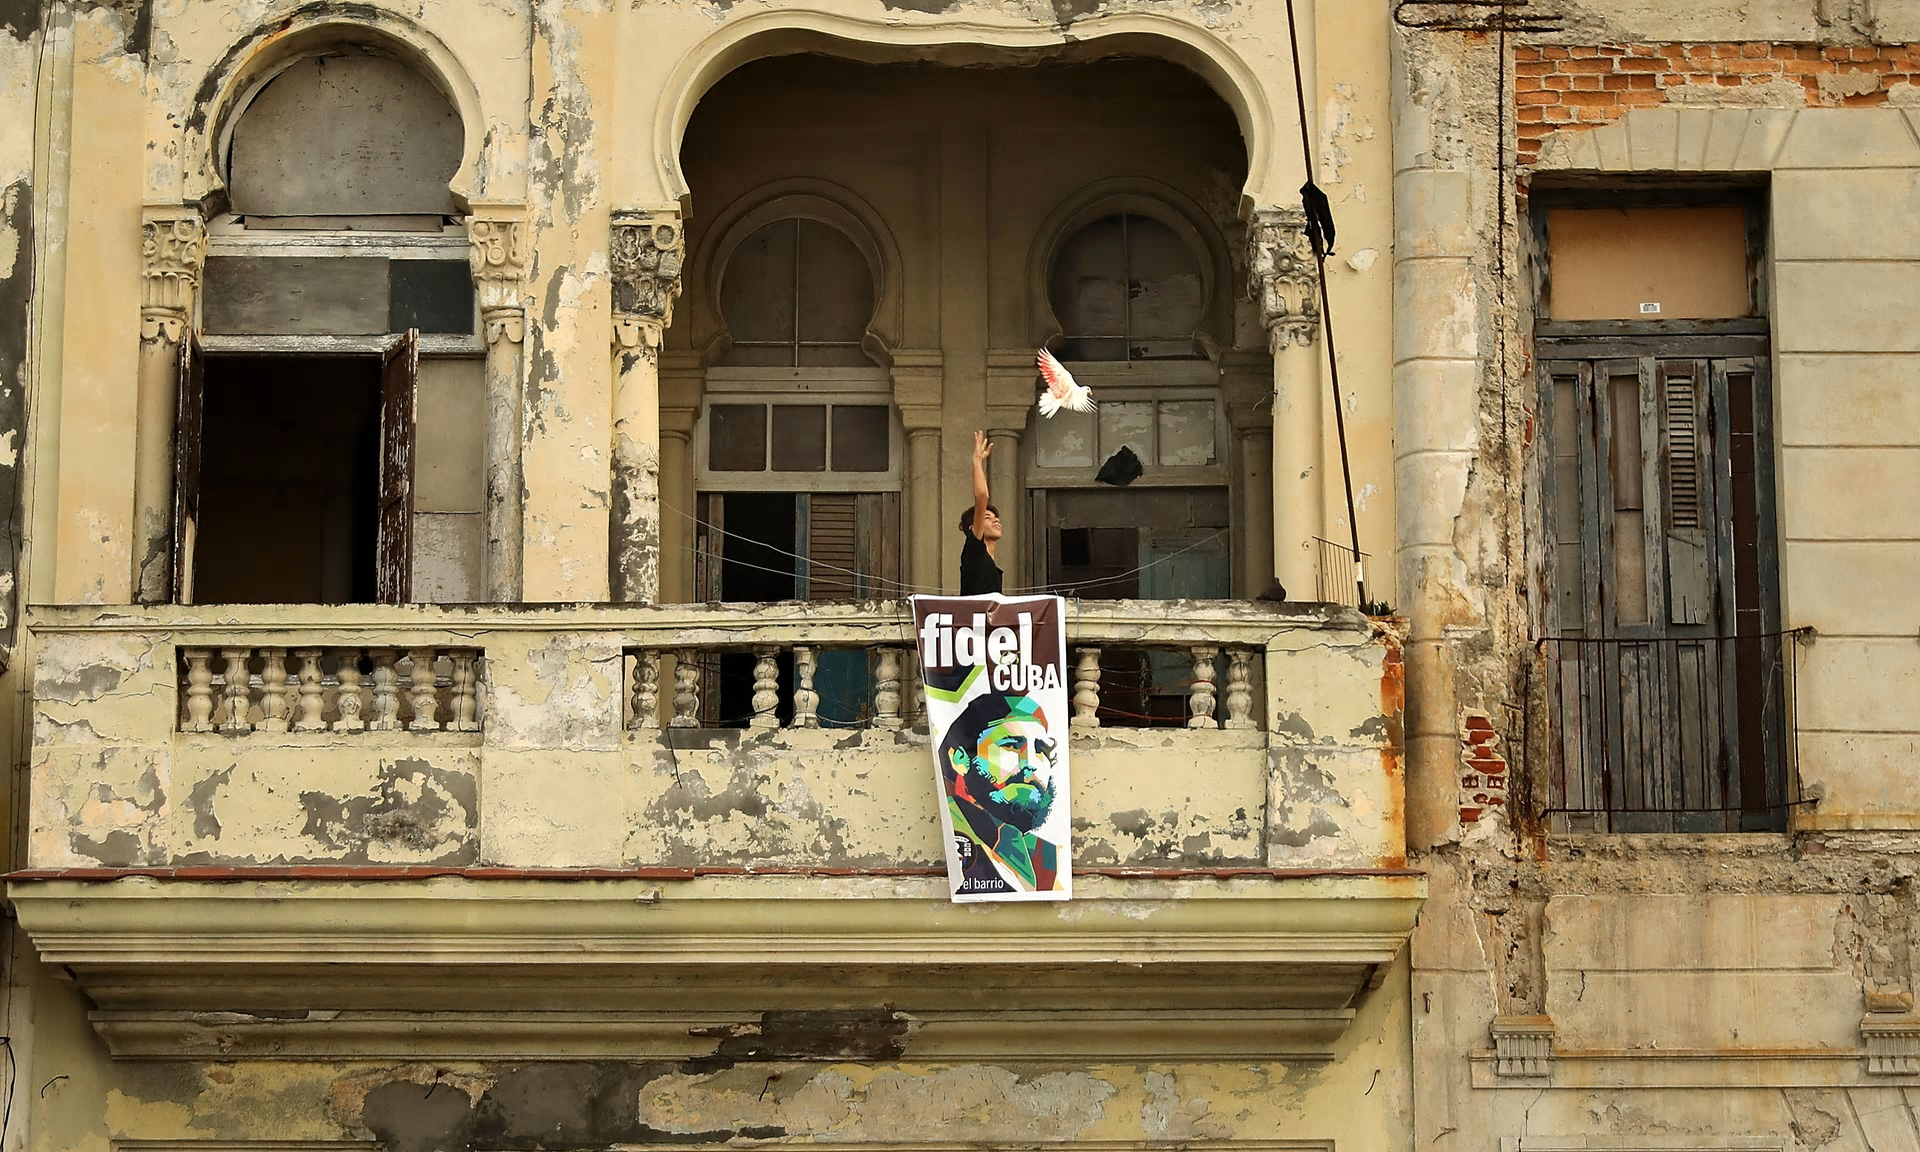 Photography: Chip | Cuba | Days after Fidel's Passing